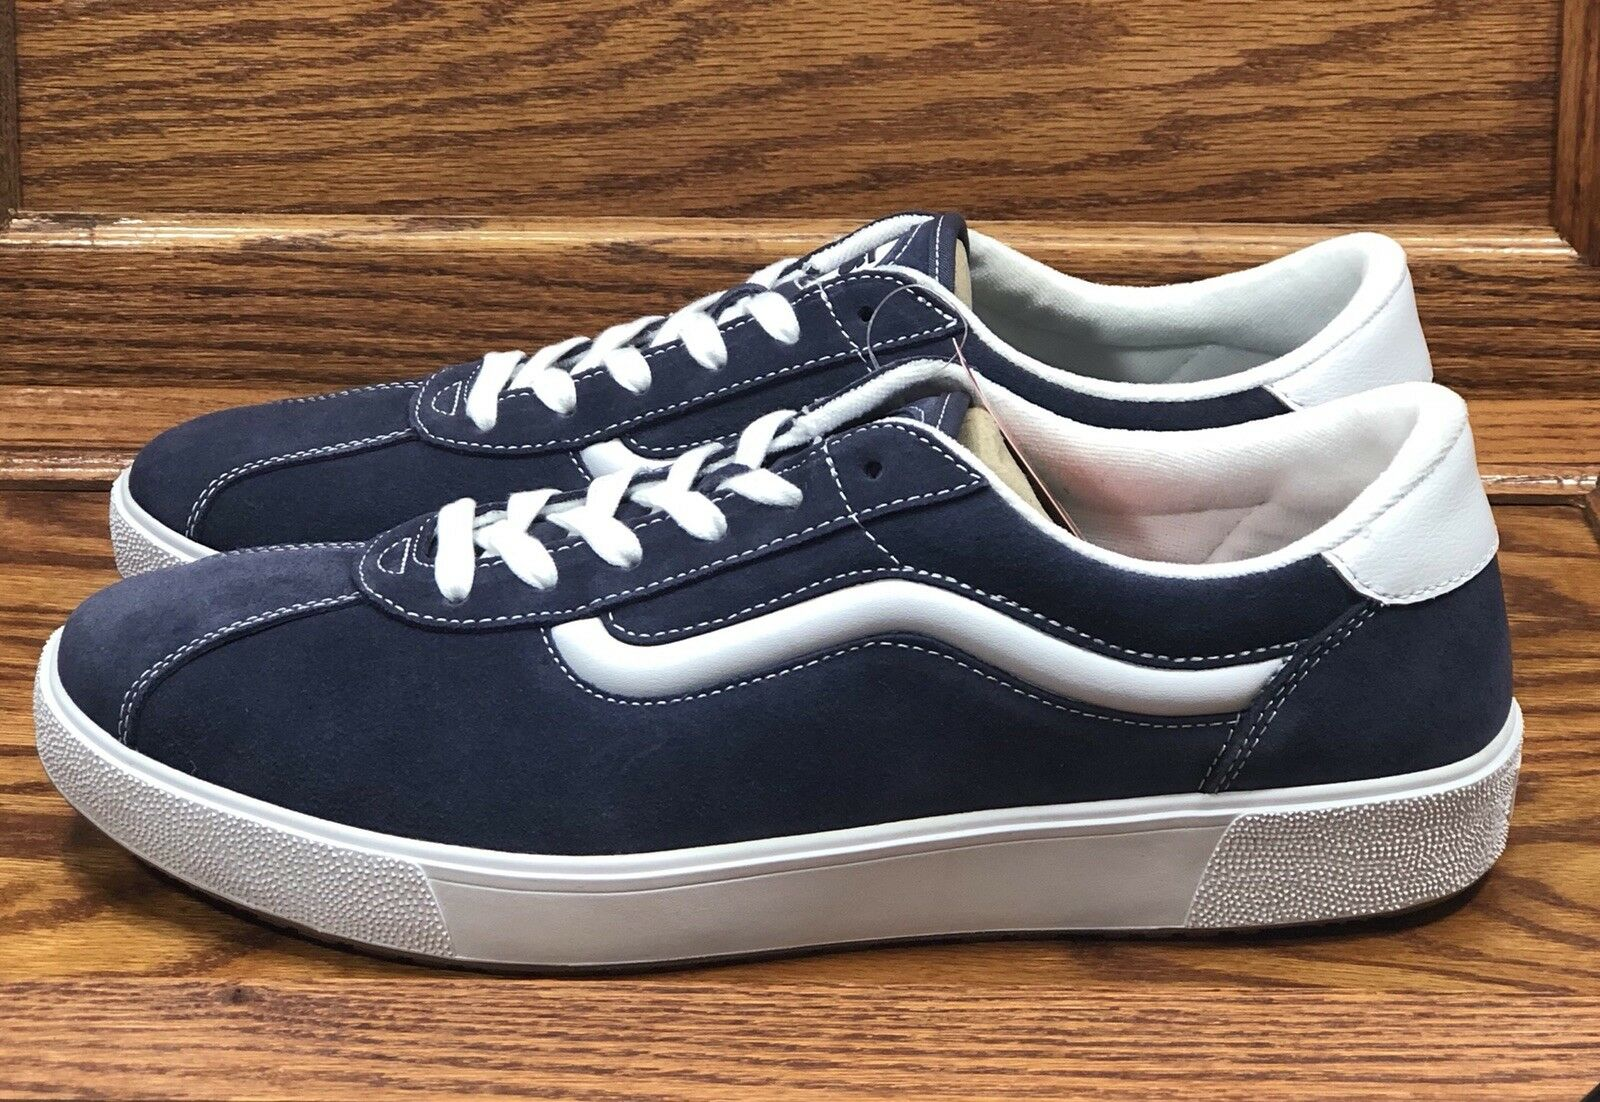 Vans Wally 3 Varsity Sport '73 Navy True White shoes Size Men 7.5 Women 9